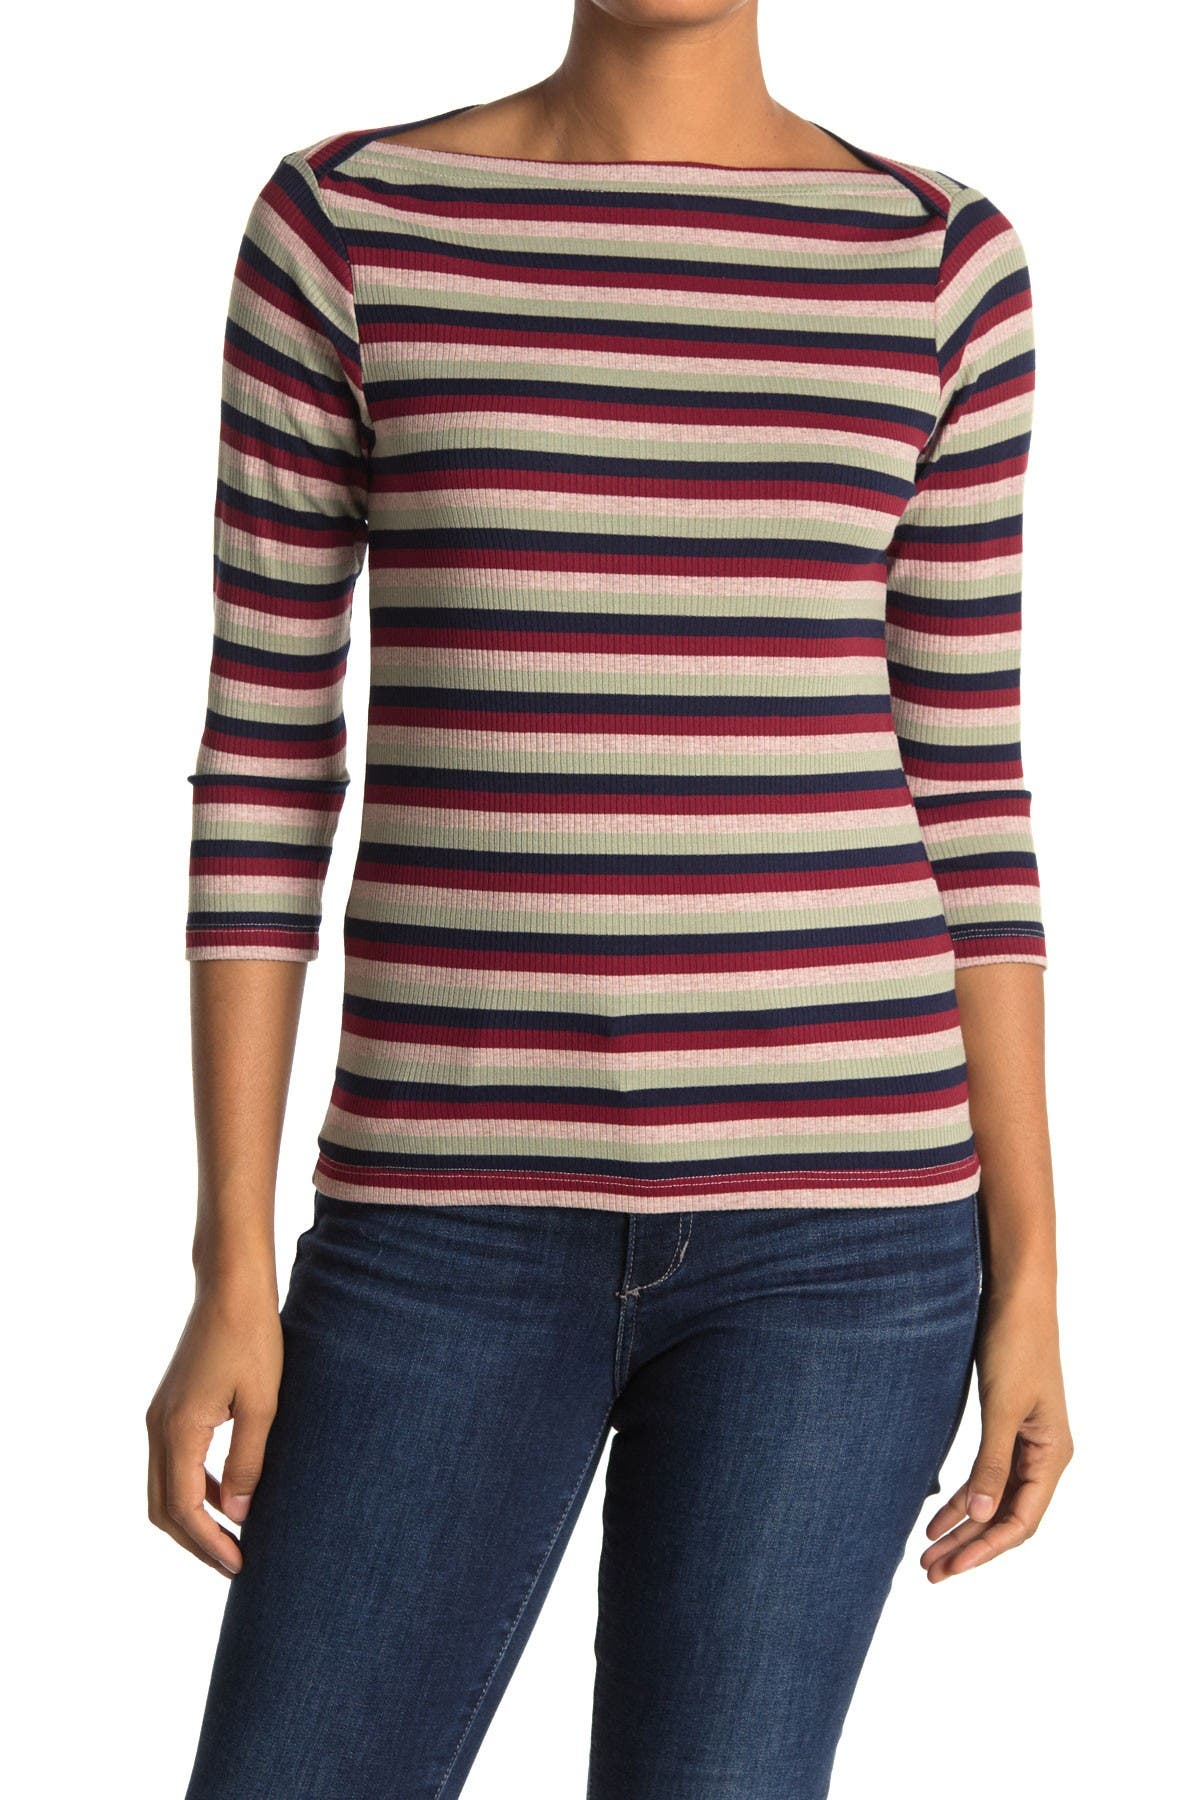 Image of Stateside Striped 3/4 Sleeve Boatneck Top